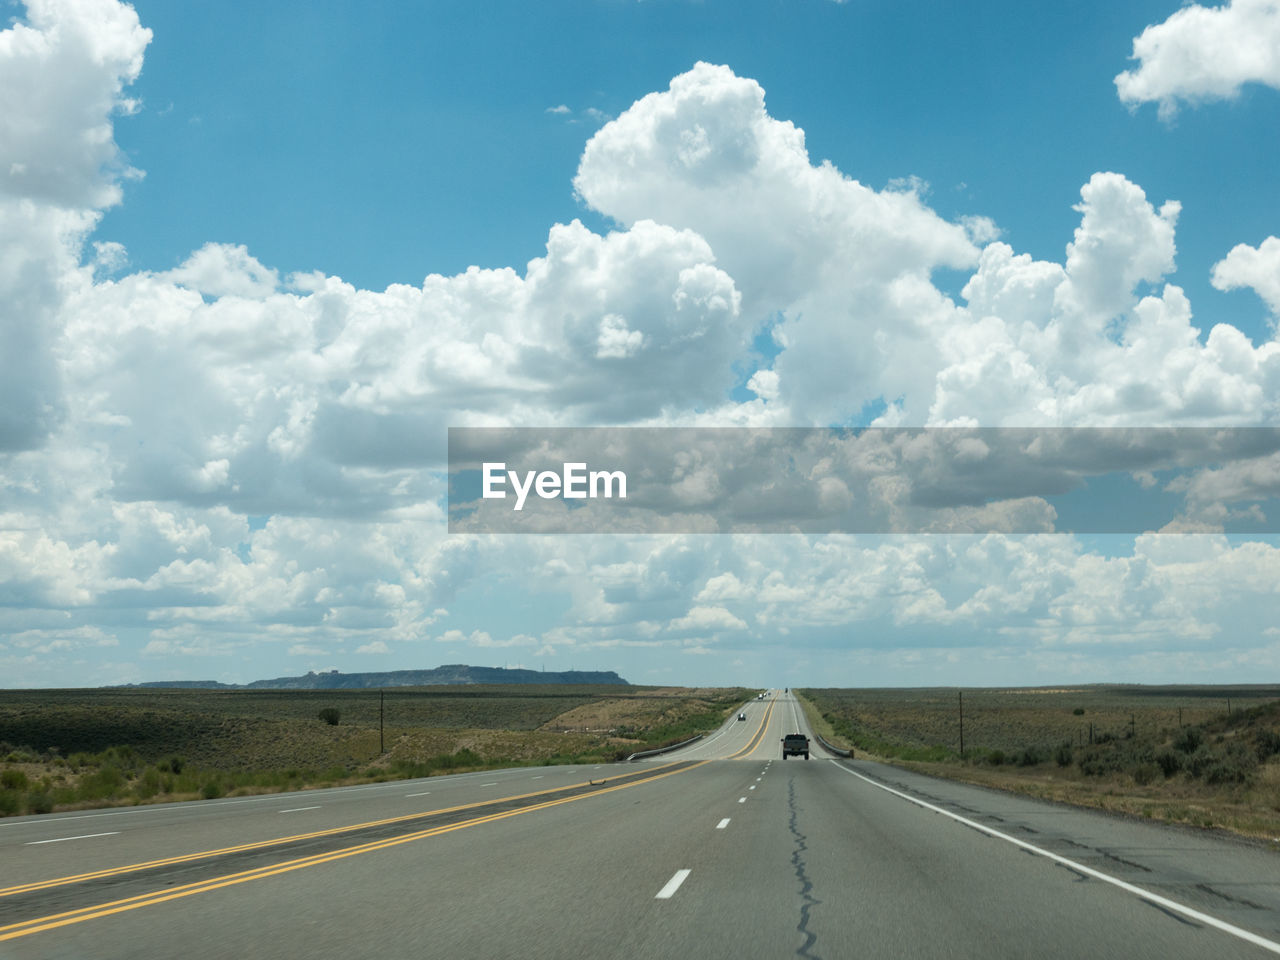 road, cloud - sky, sky, transportation, direction, the way forward, road marking, marking, symbol, day, sign, nature, environment, vanishing point, landscape, no people, diminishing perspective, country, land, non-urban scene, outdoors, dividing line, long